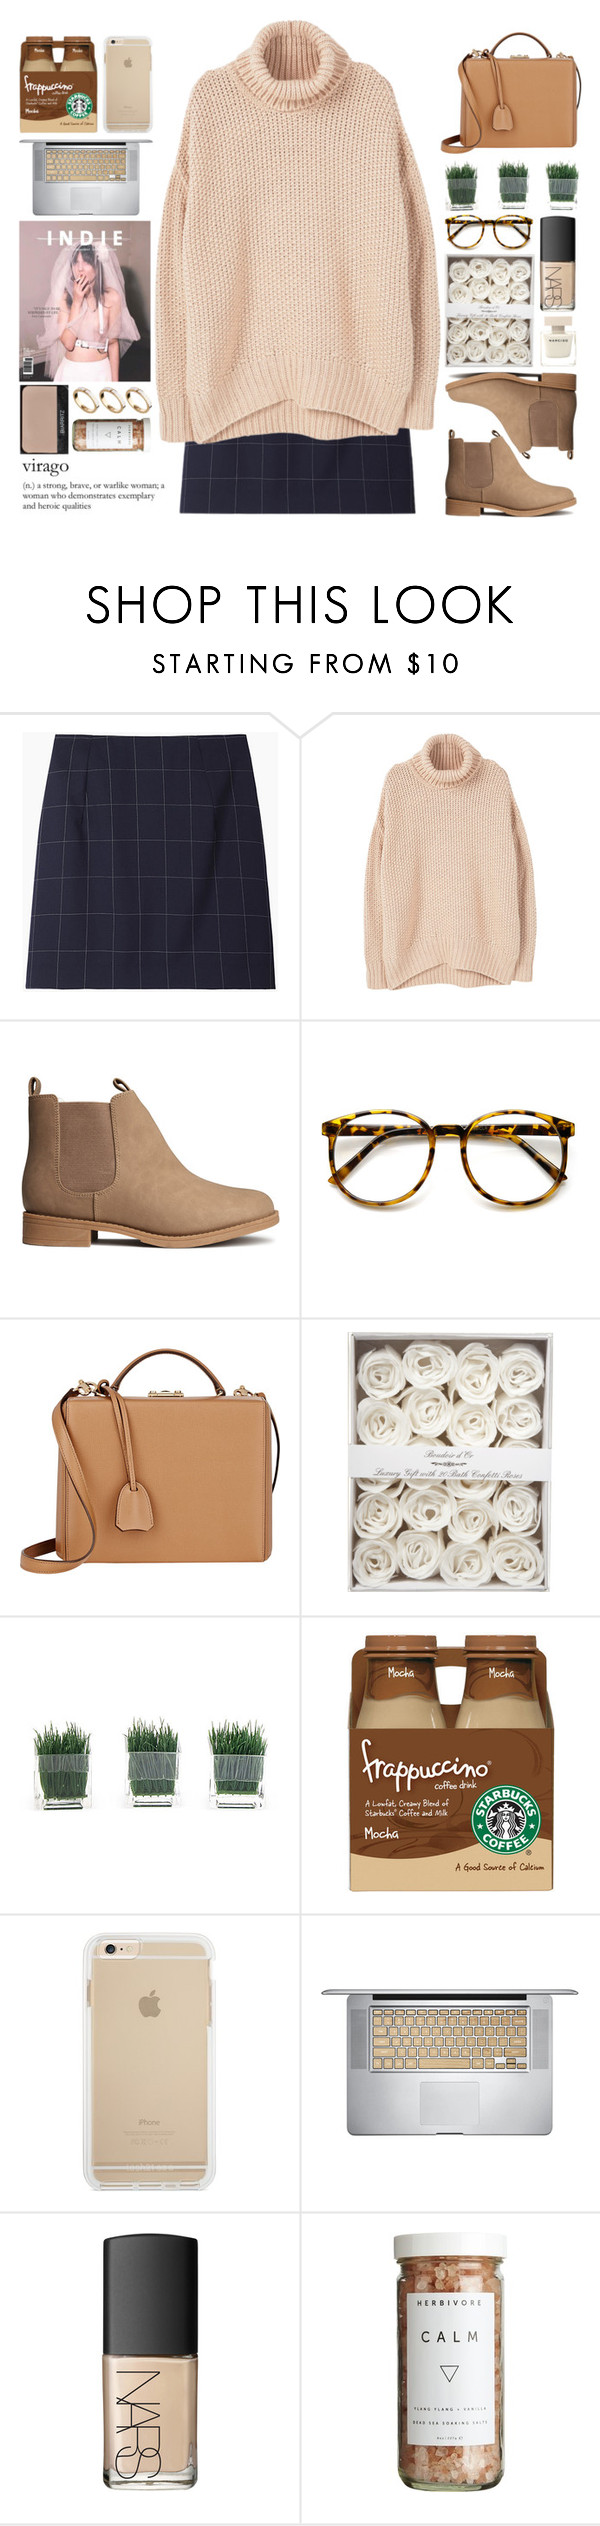 """""""Joshua Thomas – Paper Heart"""" by owlmarbles ❤ liked on Polyvore featuring Jacquemus, MANGO, H&M, Mark Cross, NARS Cosmetics, CB2, INDIE HAIR and ASOS"""